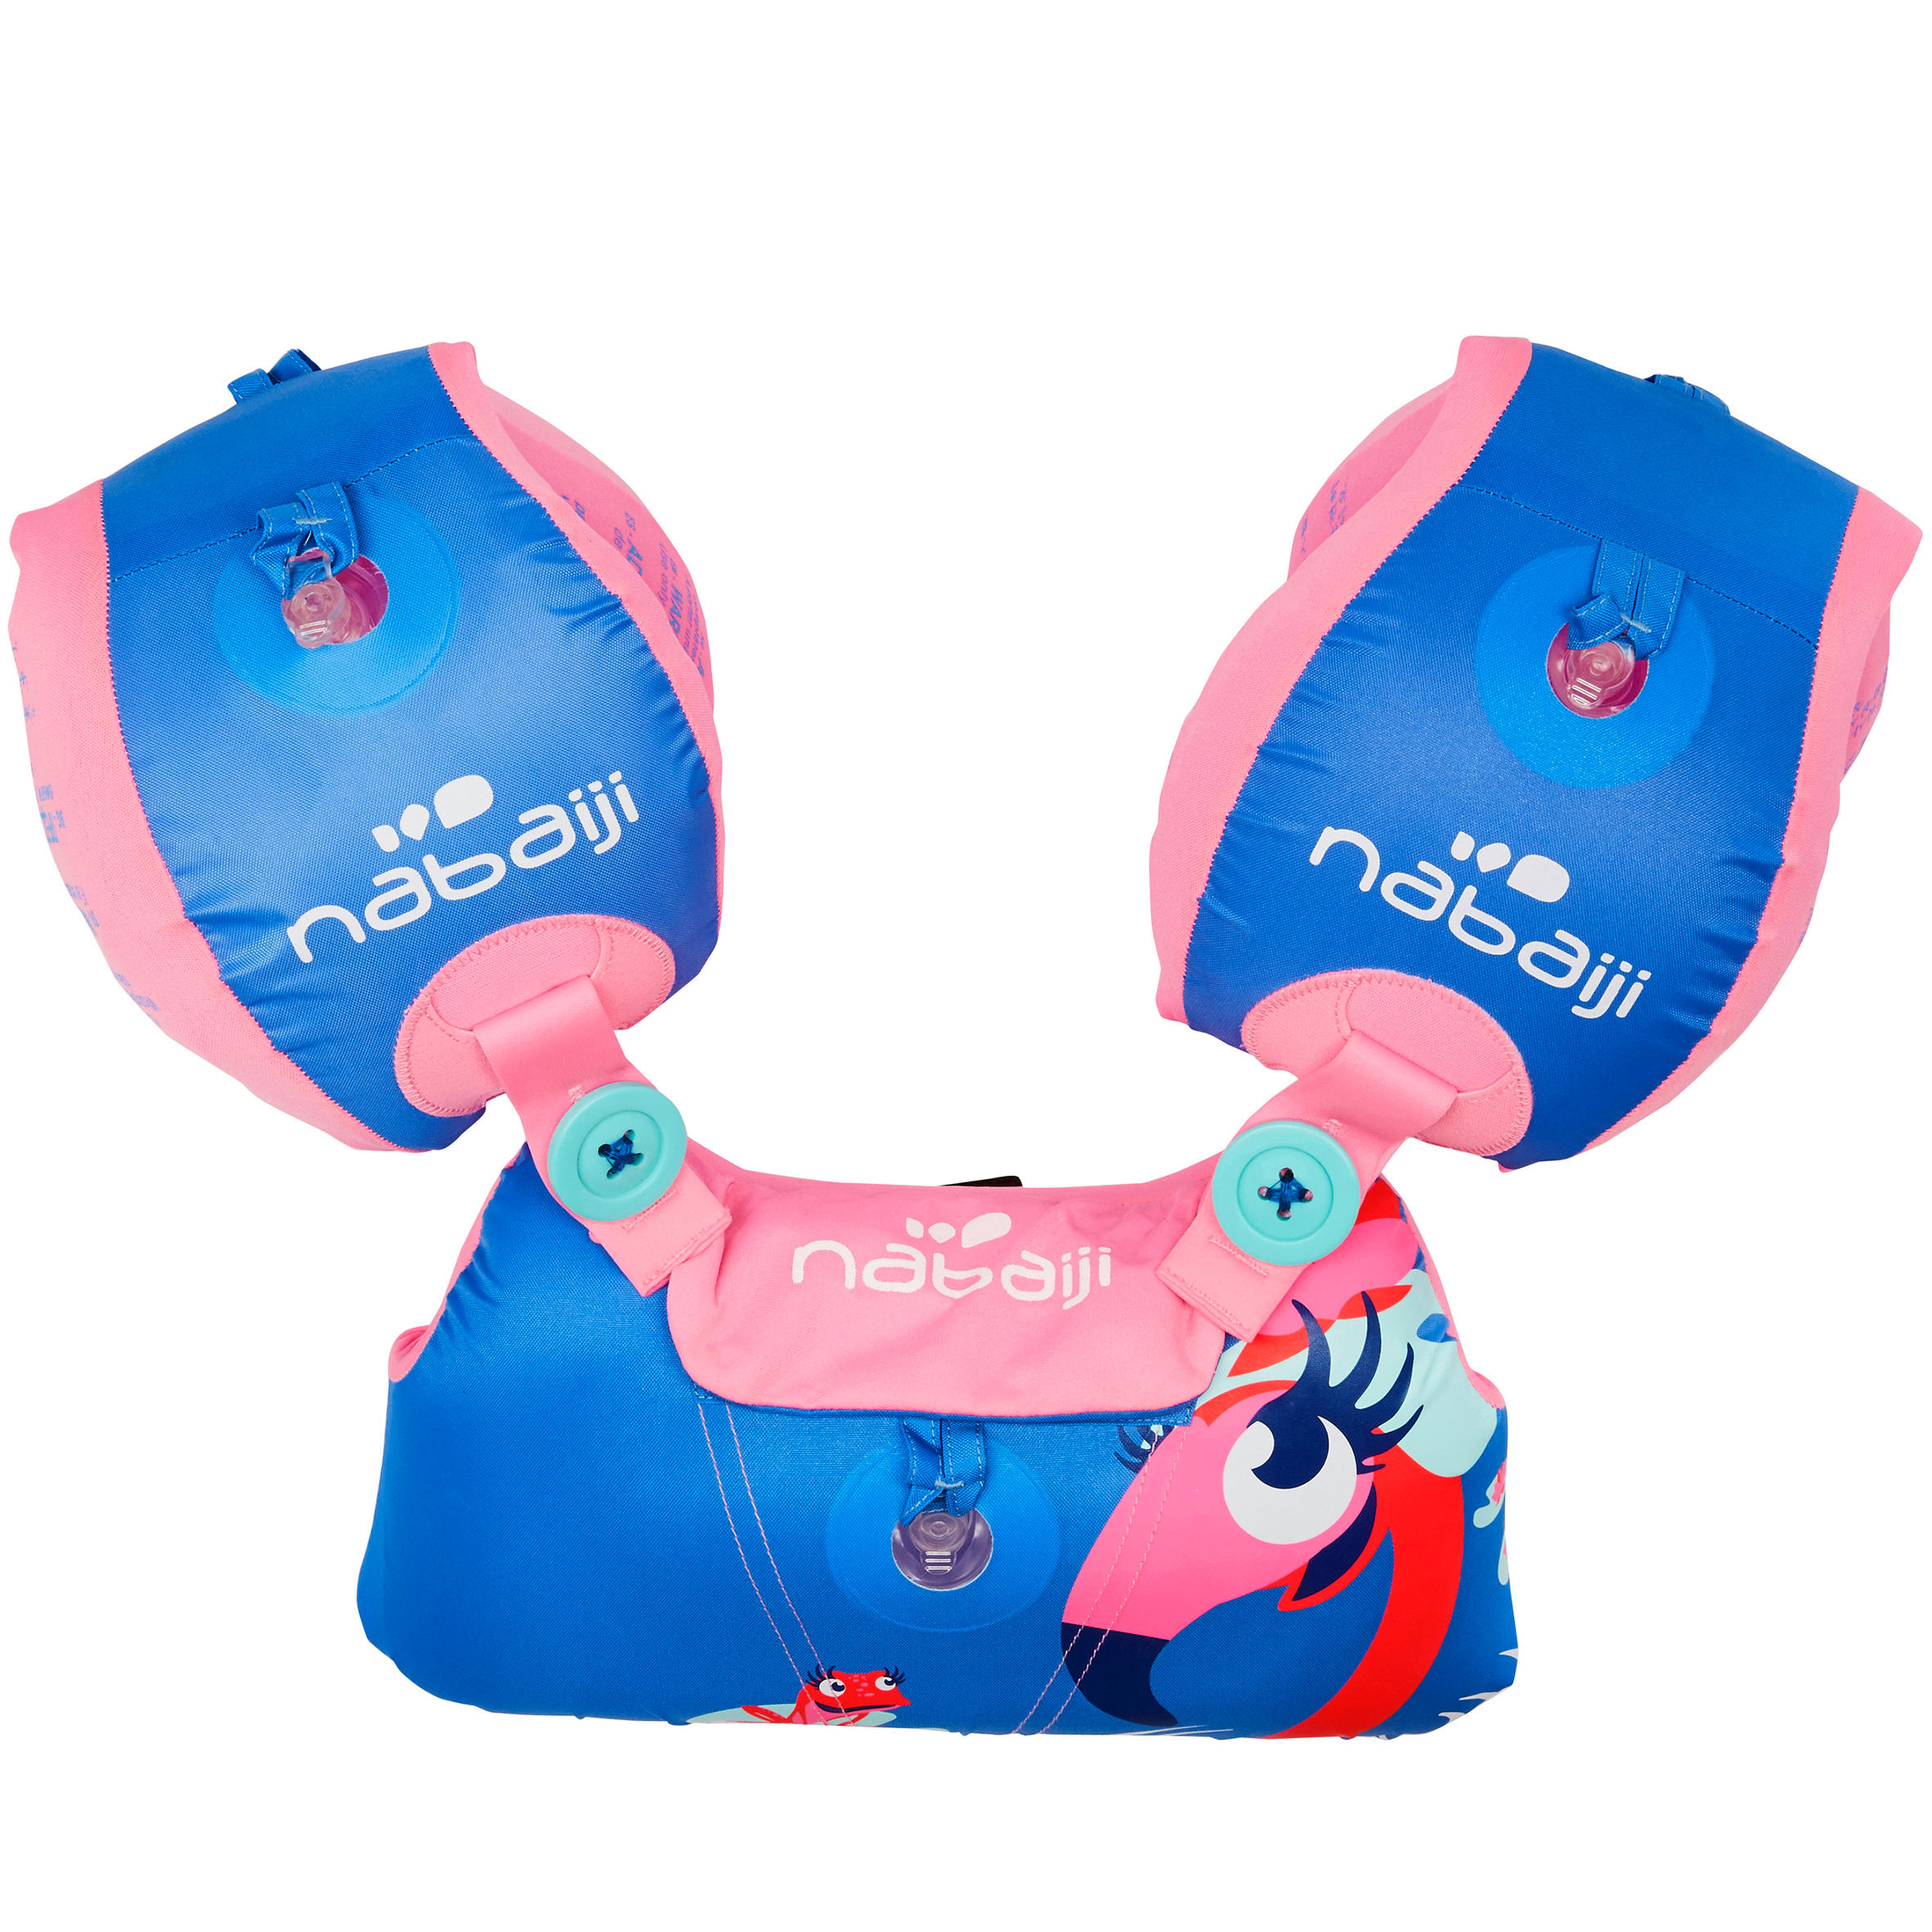 Child's TISWIM adaptable armband-waistbands Pink Printed _QUOTE_PINK FLAMINGO_QUOTE_